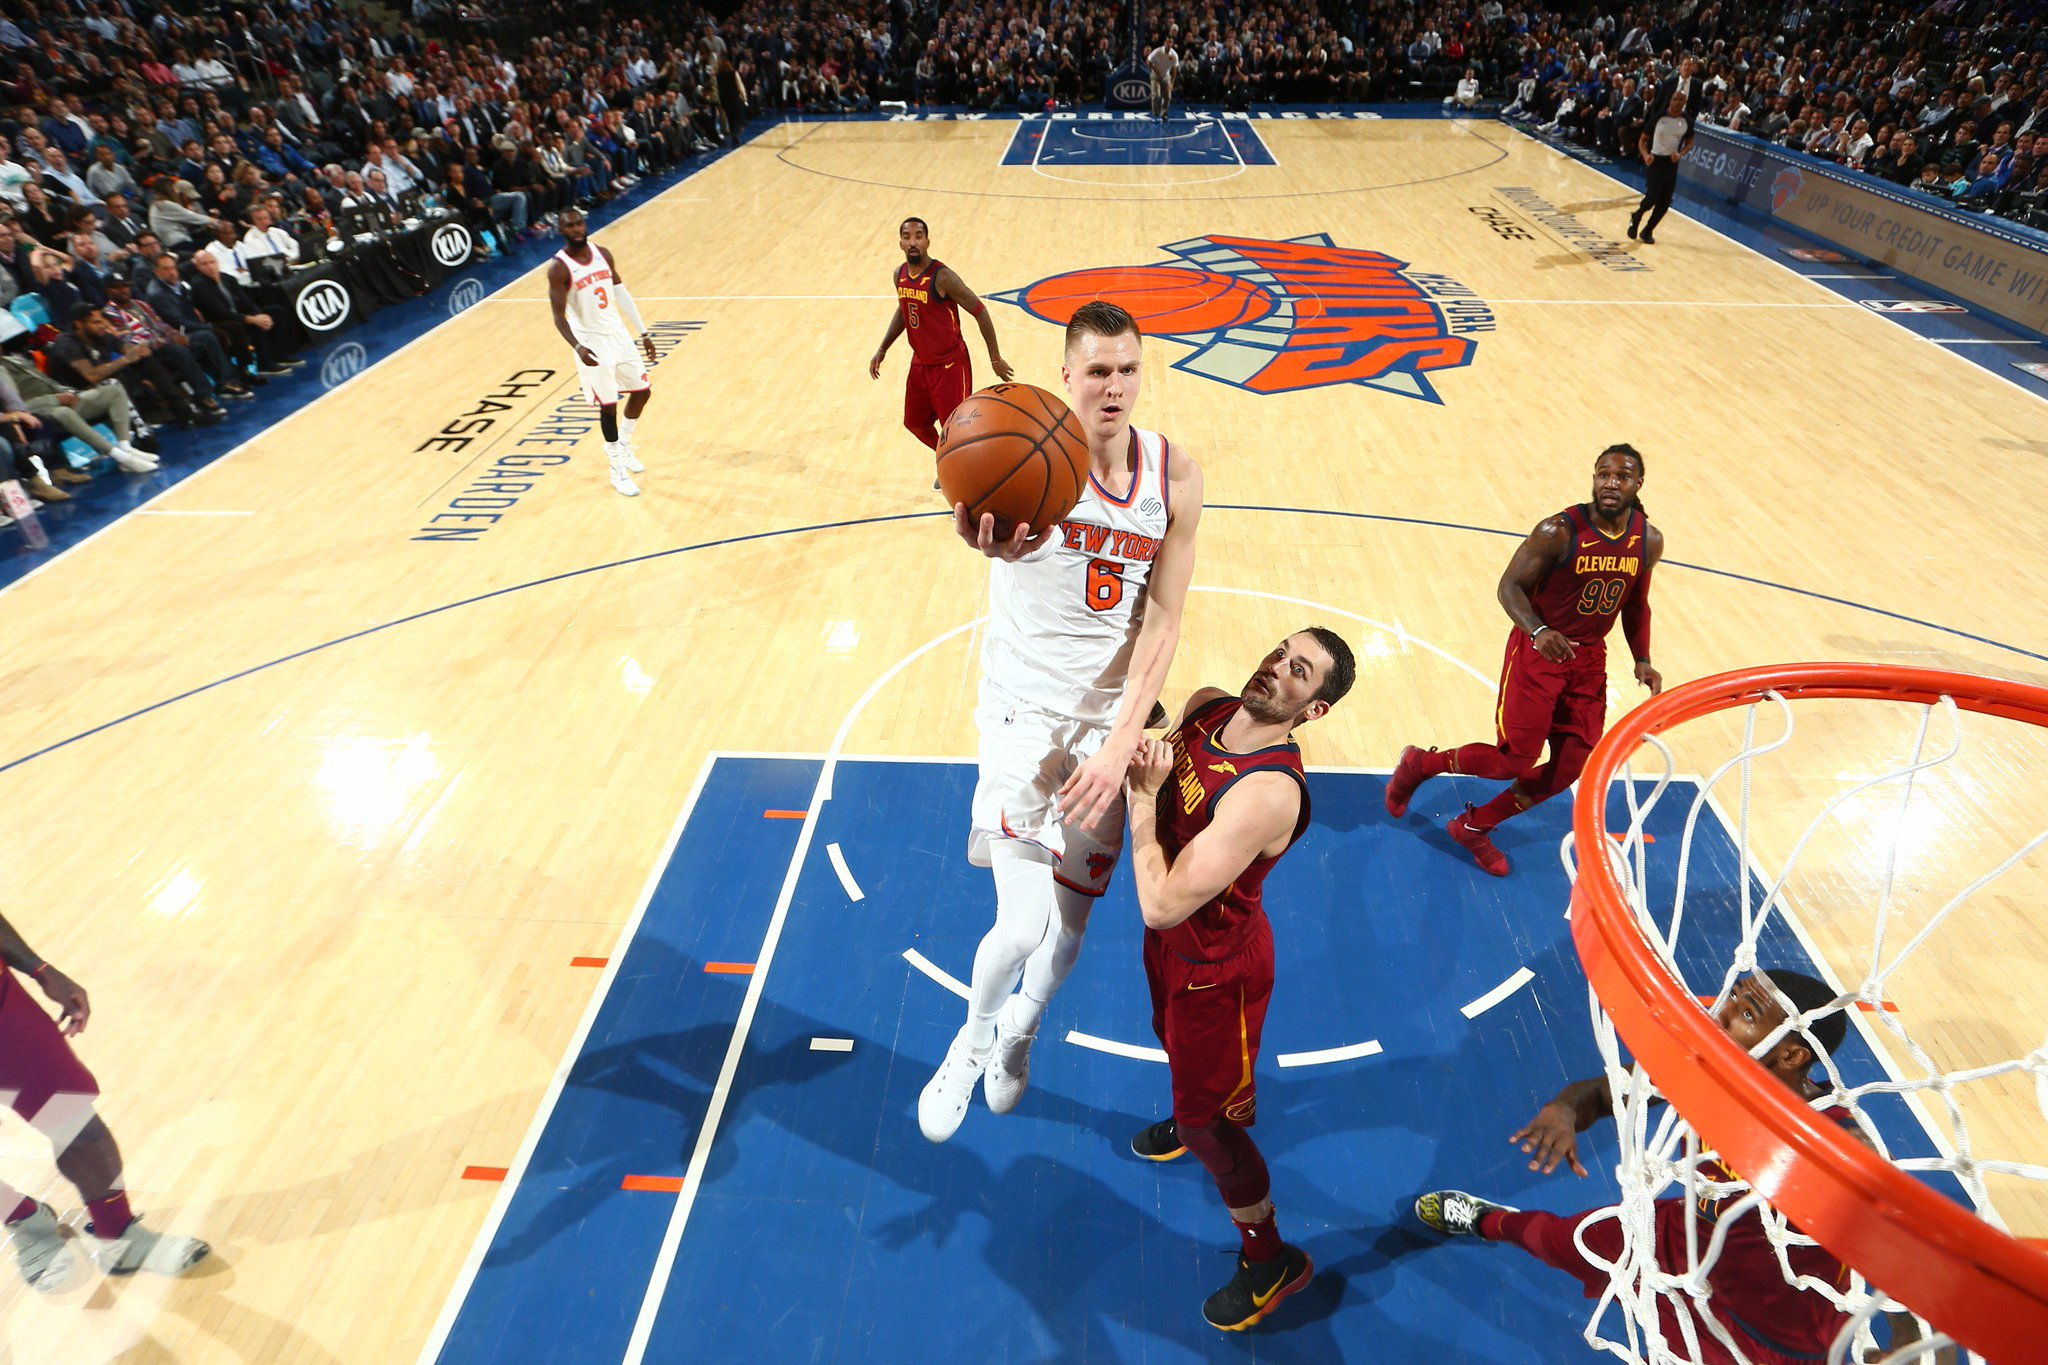 #LeaguePassAlert  The @cavs have cut into a 23 point deficit.   @nyknicks lead 92-86 with 4:17 to play. https://t.co/LdIoCJmJjE